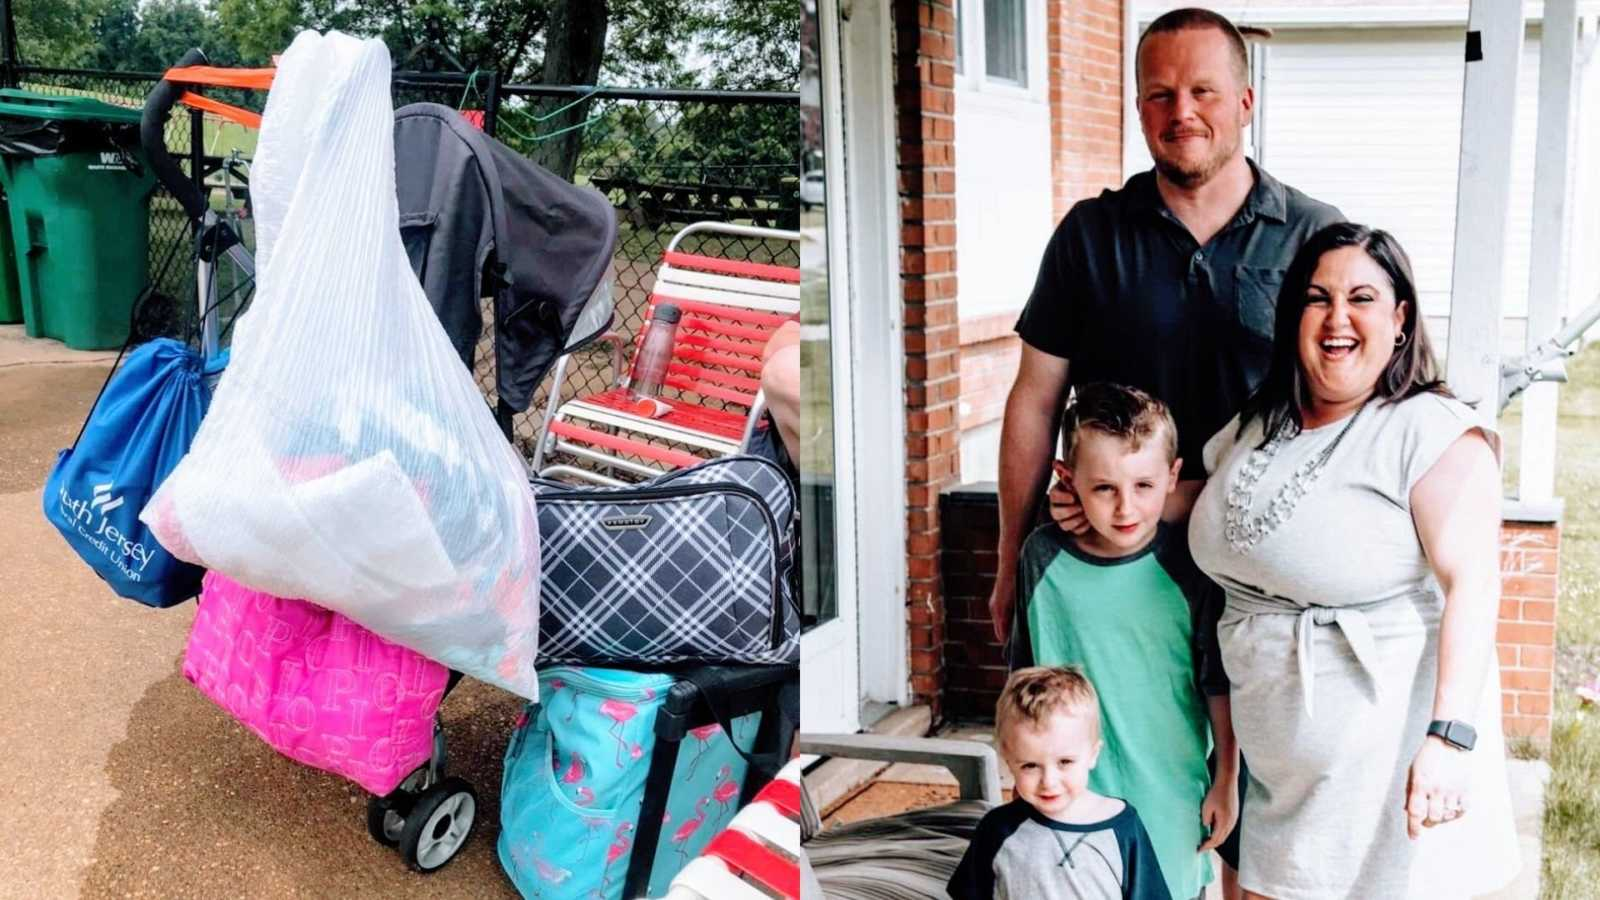 A stroller with several bags on it and a family with two children standing on their porch